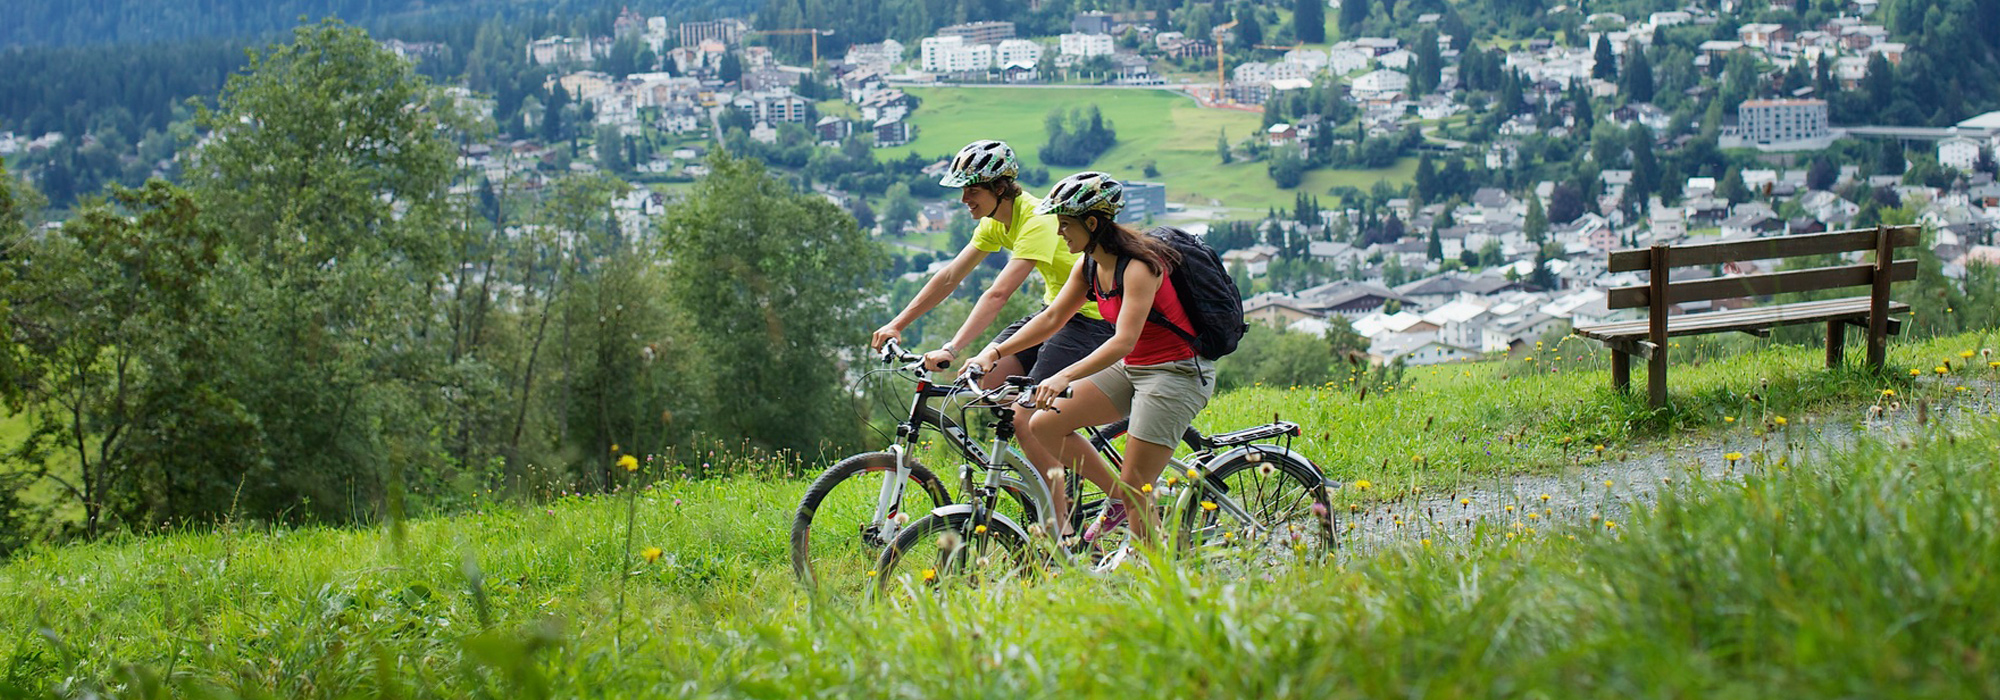 Bikeferien Flims in Aktion